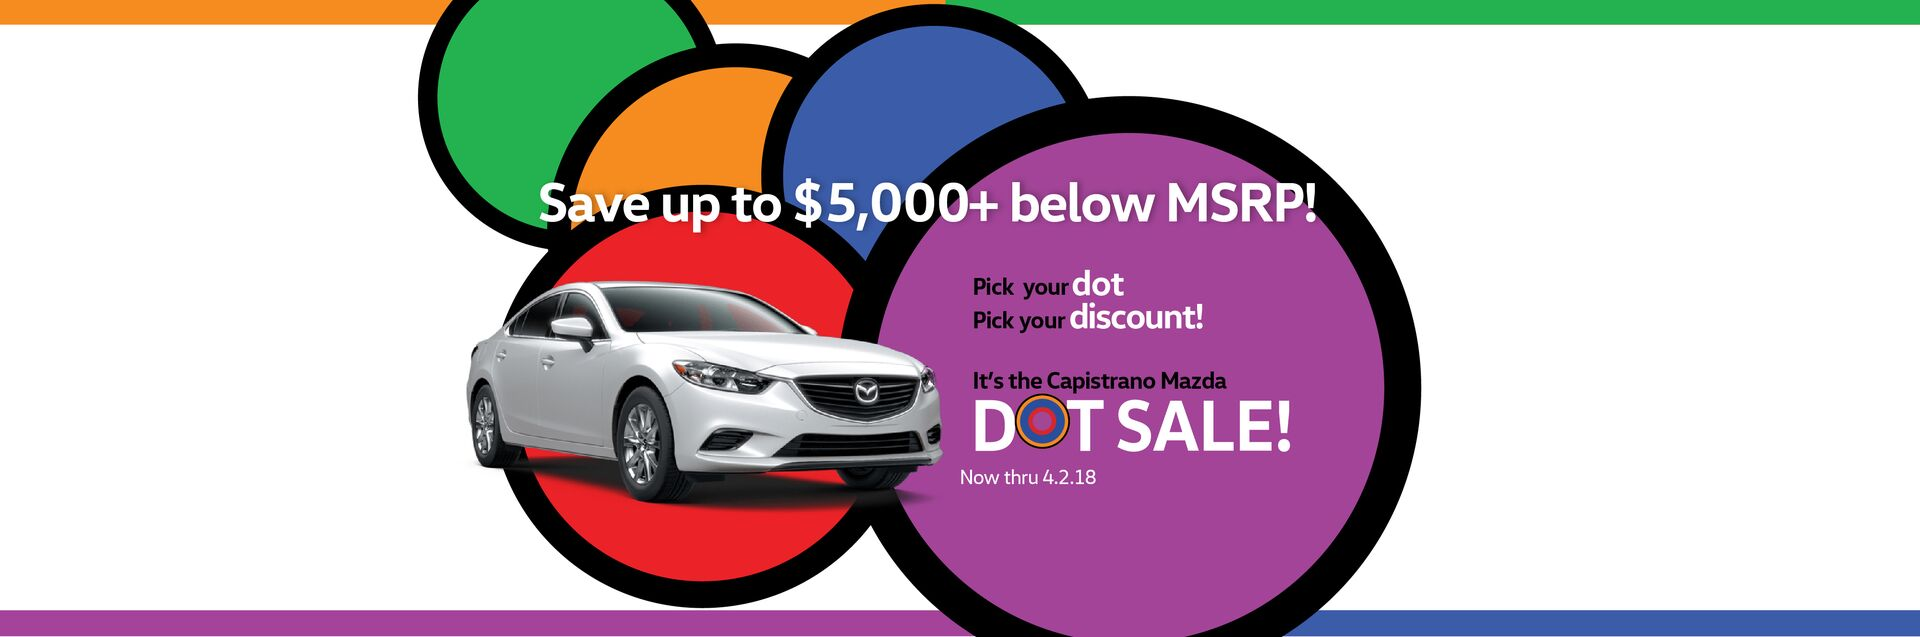 Capistrano Mazda Dot Sale - Save up to $5,000+ on new Mazda vehicles now thru April 2